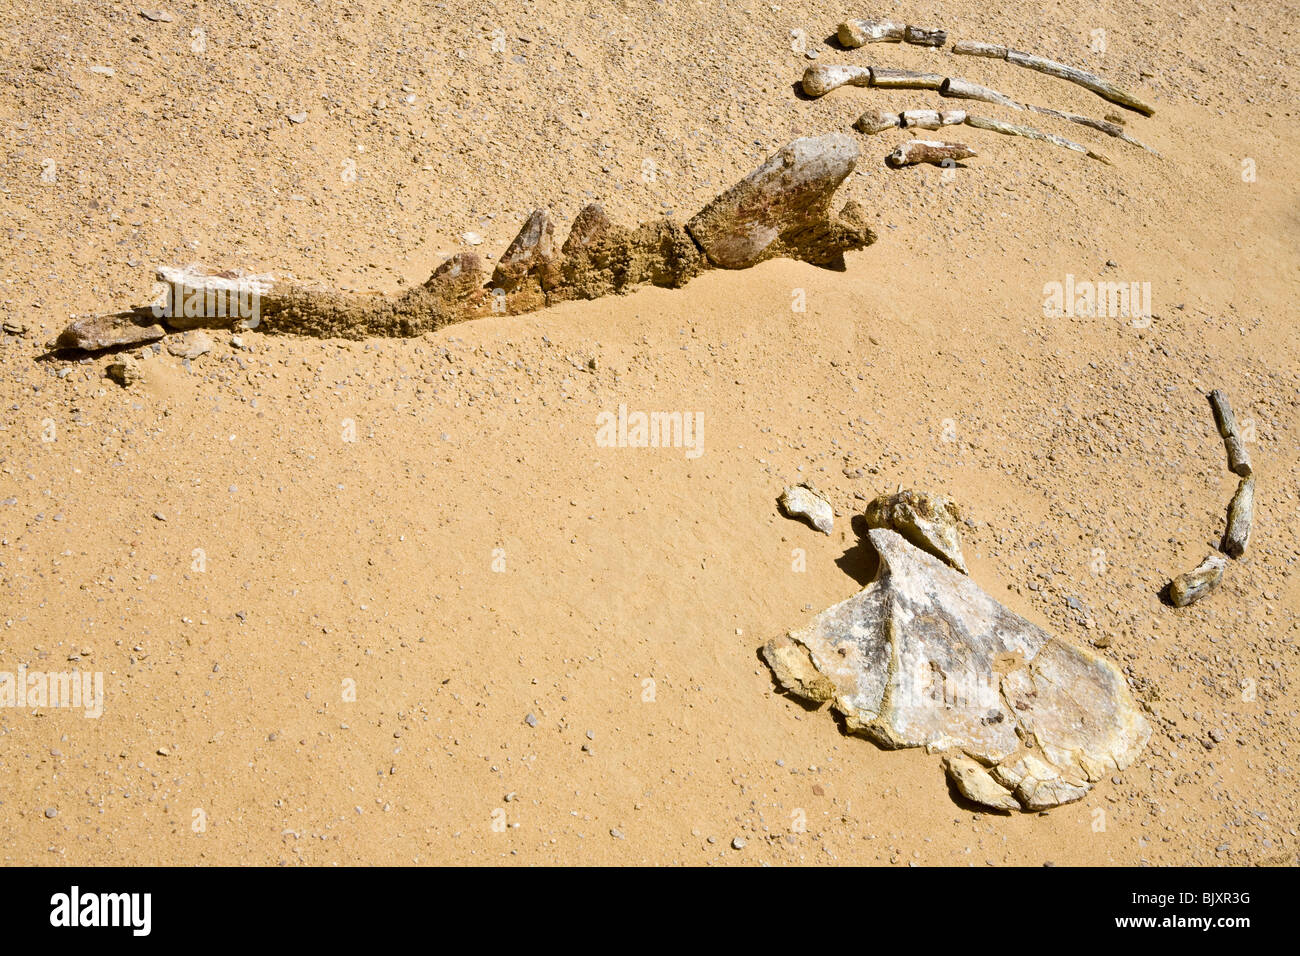 Fossilised bones of ancient whales in the Valley of The Whales, Wadi El-Hitan, Western Desert of Egypt - Stock Image